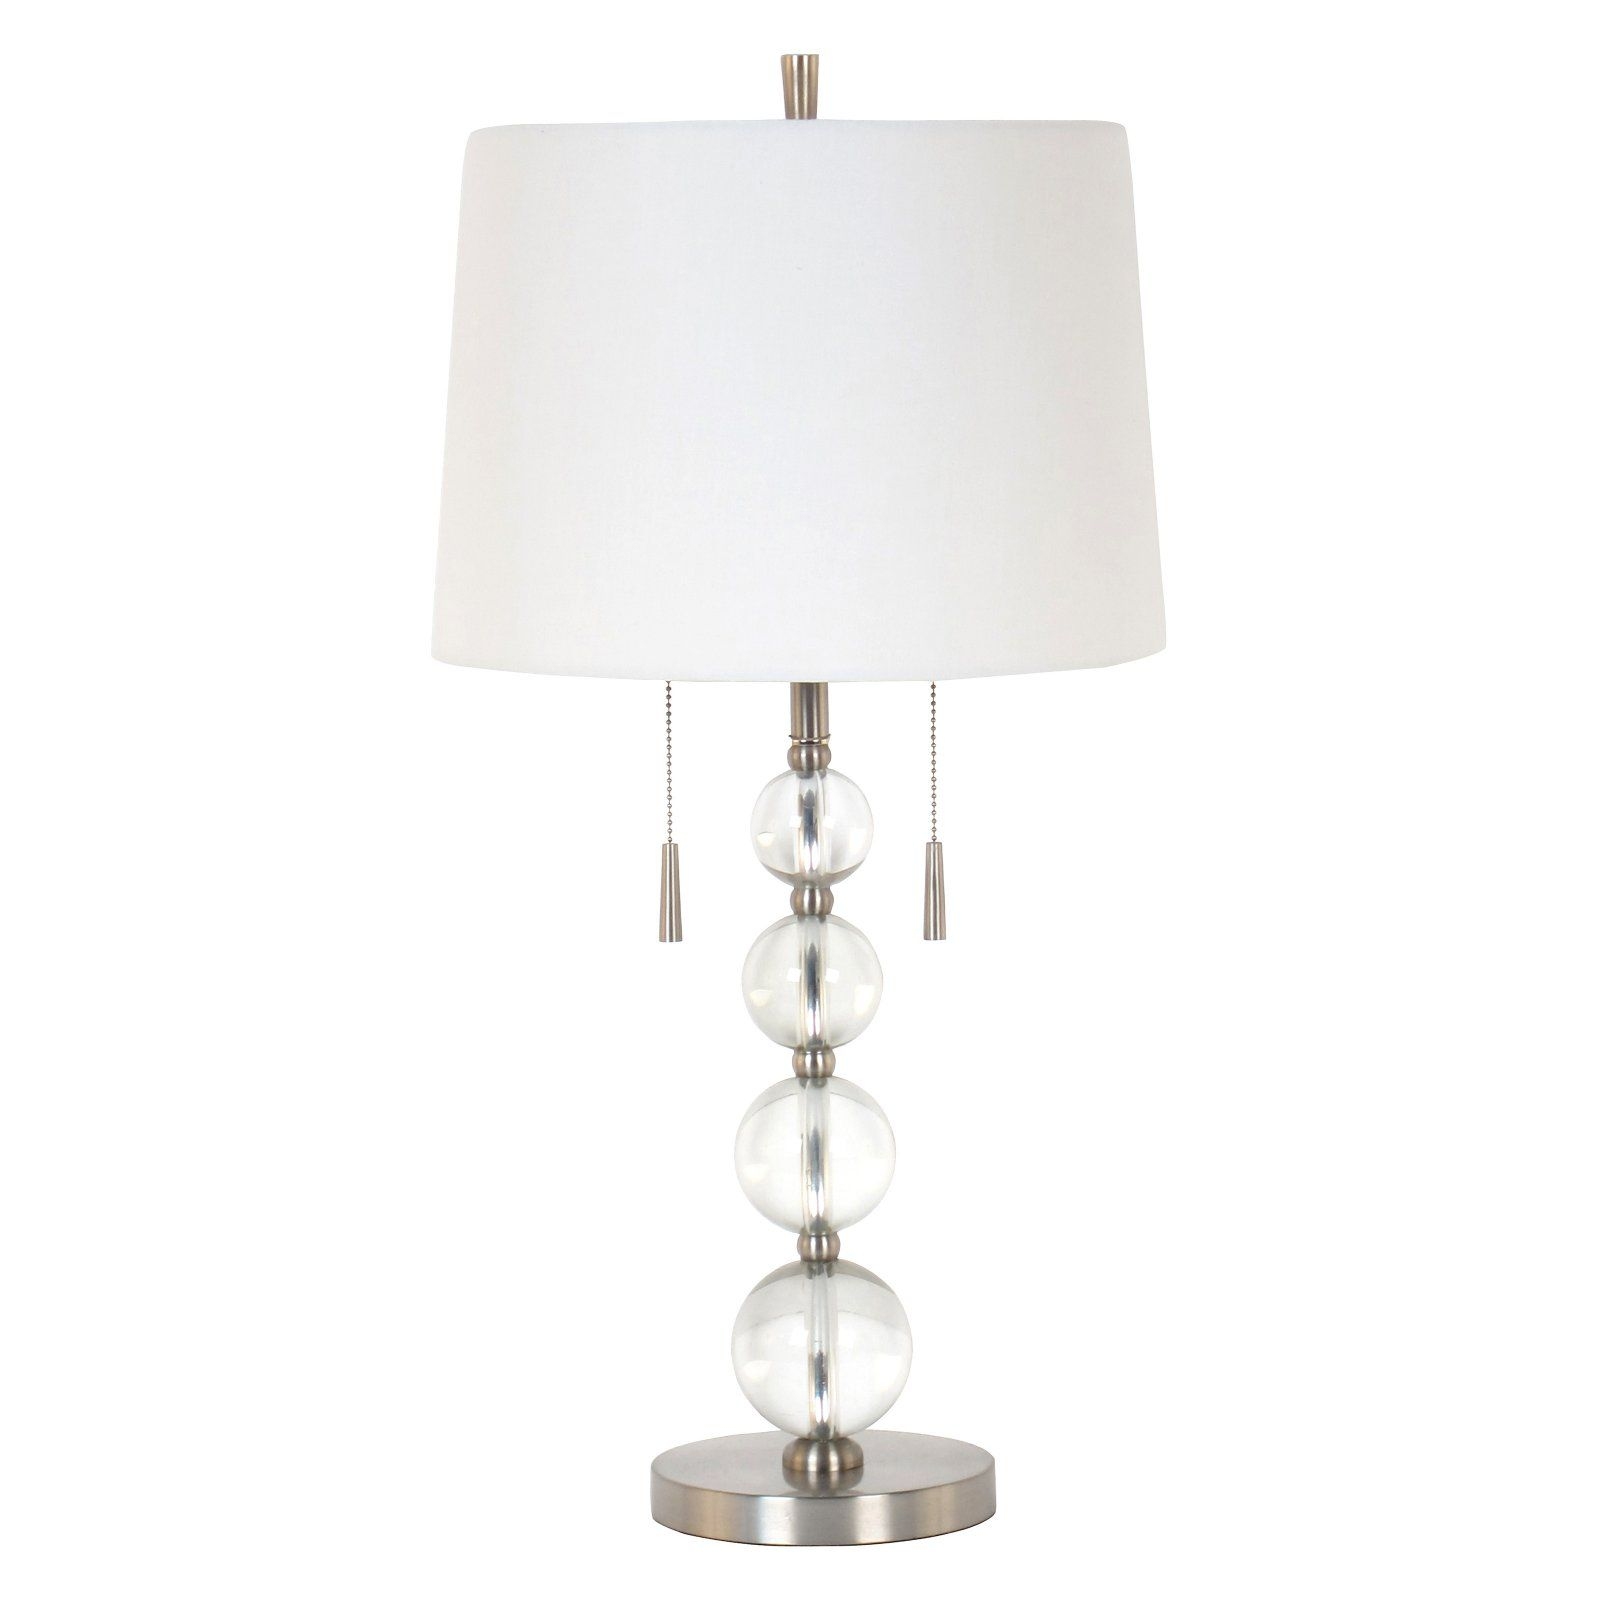 Urban Style Living Twin Pull Chain Acrylic Table Lamp in